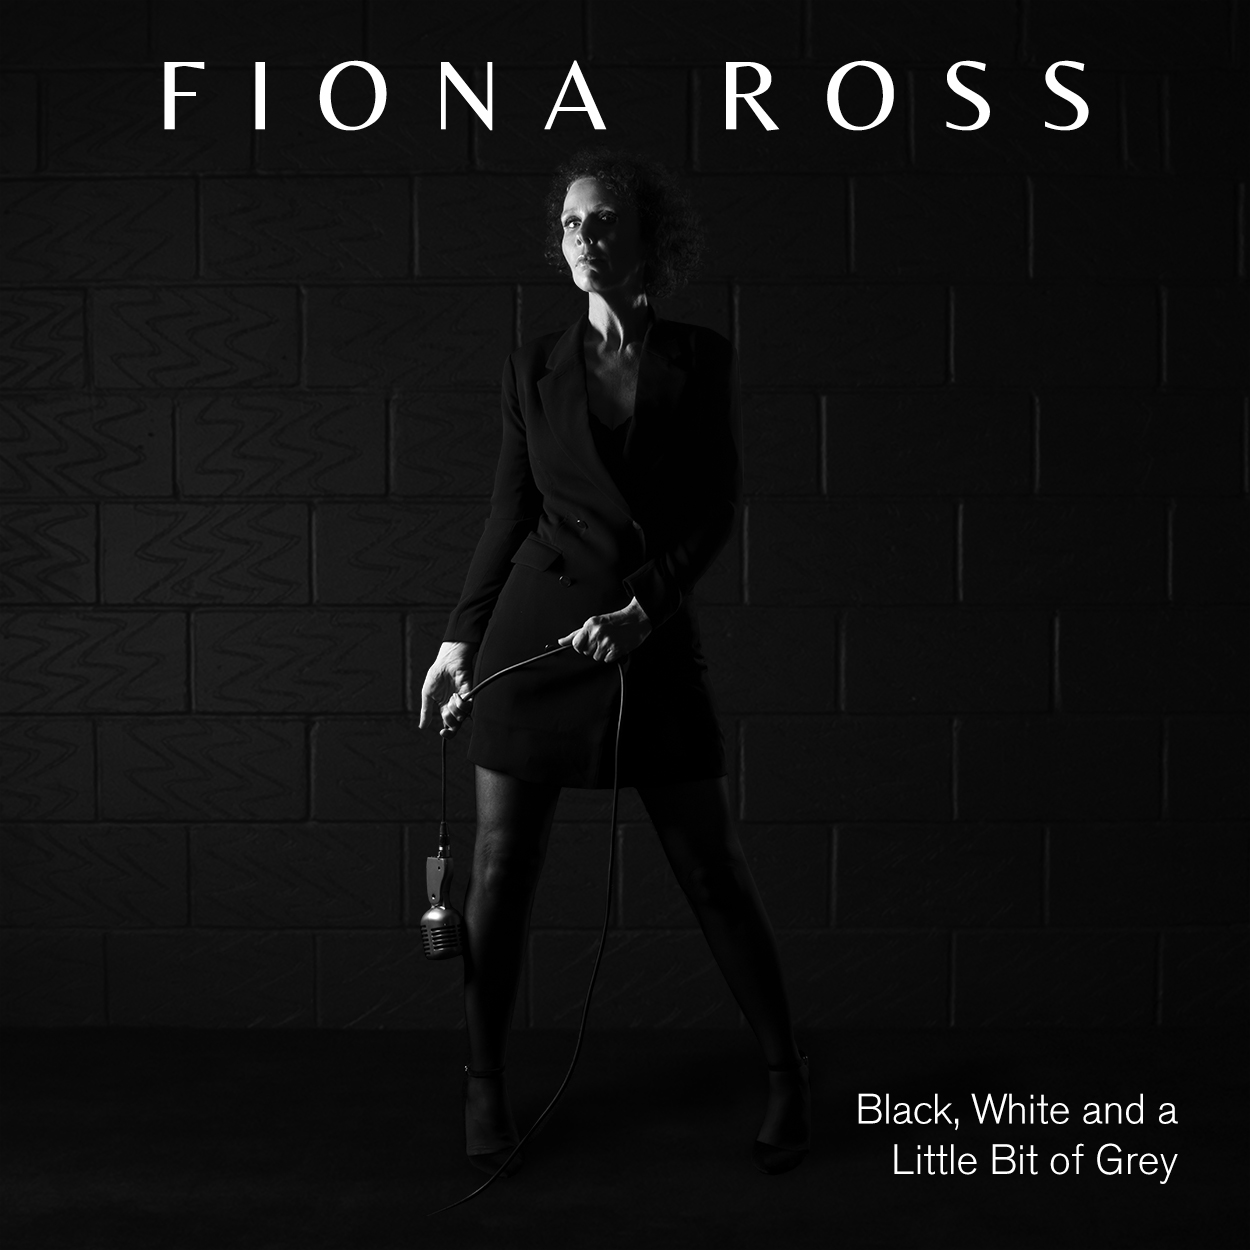 FIONA ROSS 'FIERCE AND NON-COMPLIANT' ALBUM TOUR